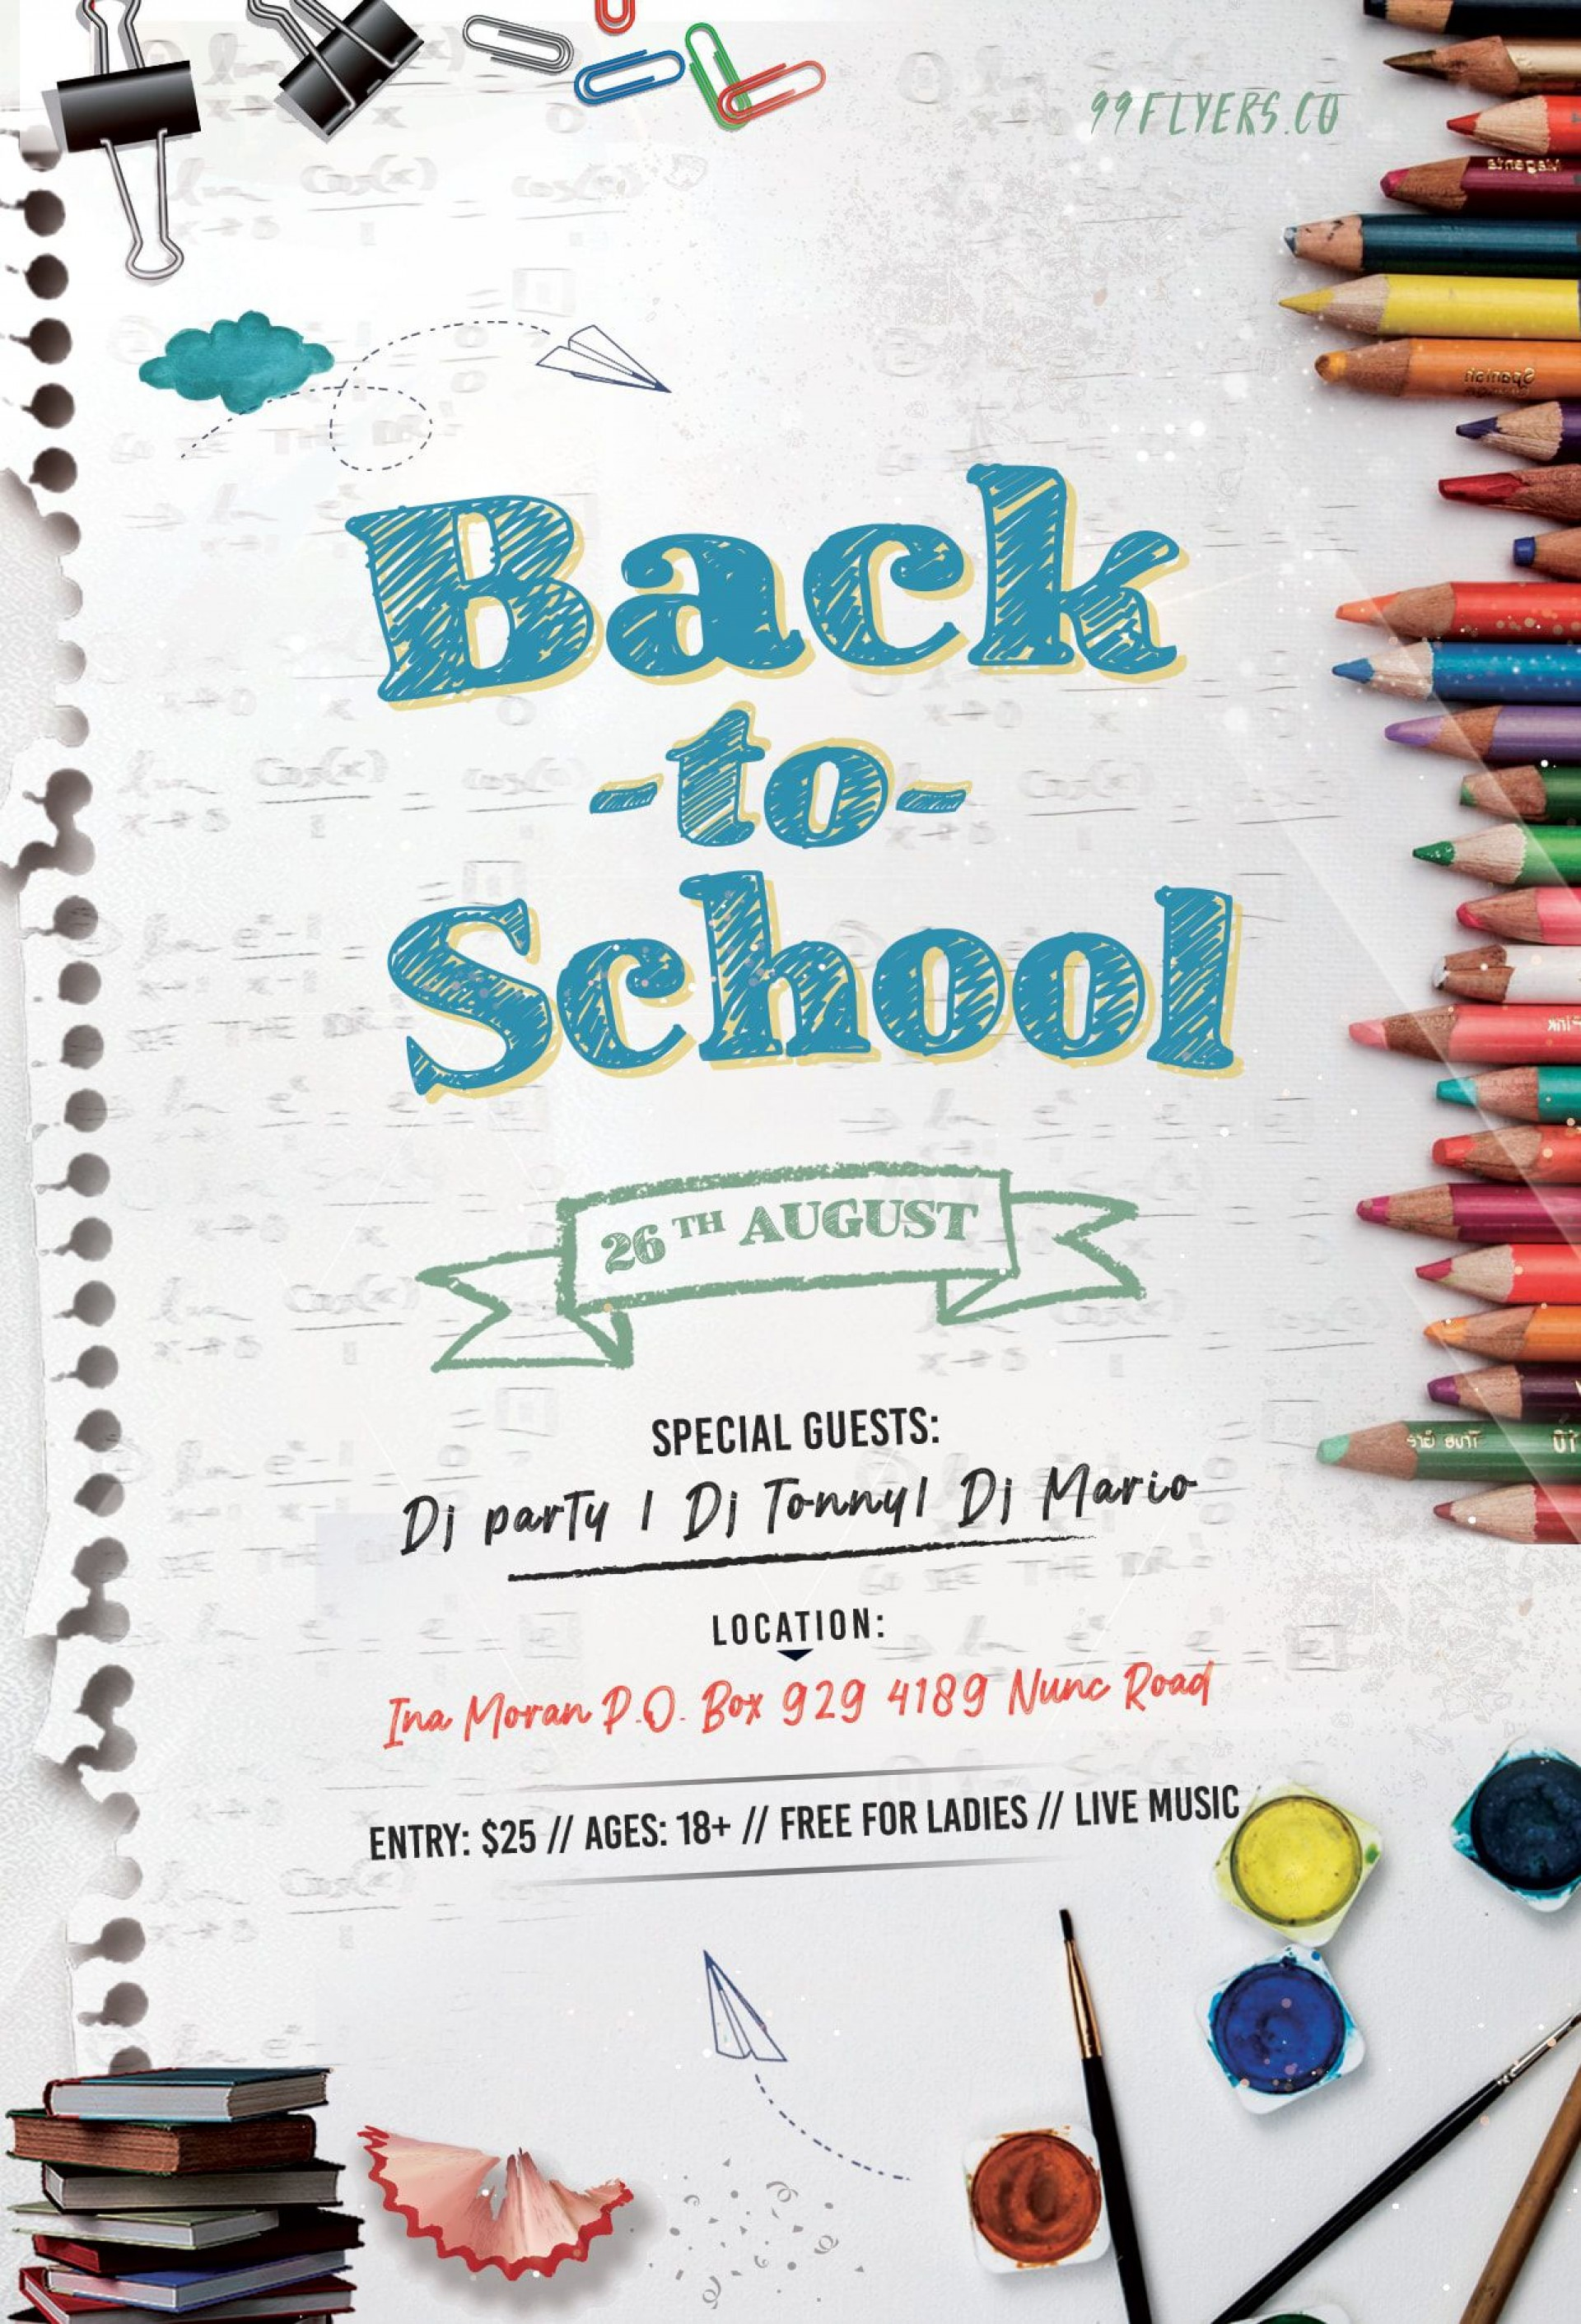 003 Imposing Free School Flyer Template High Definition  Templates Vacation Bible For Microsoft Word Event1920